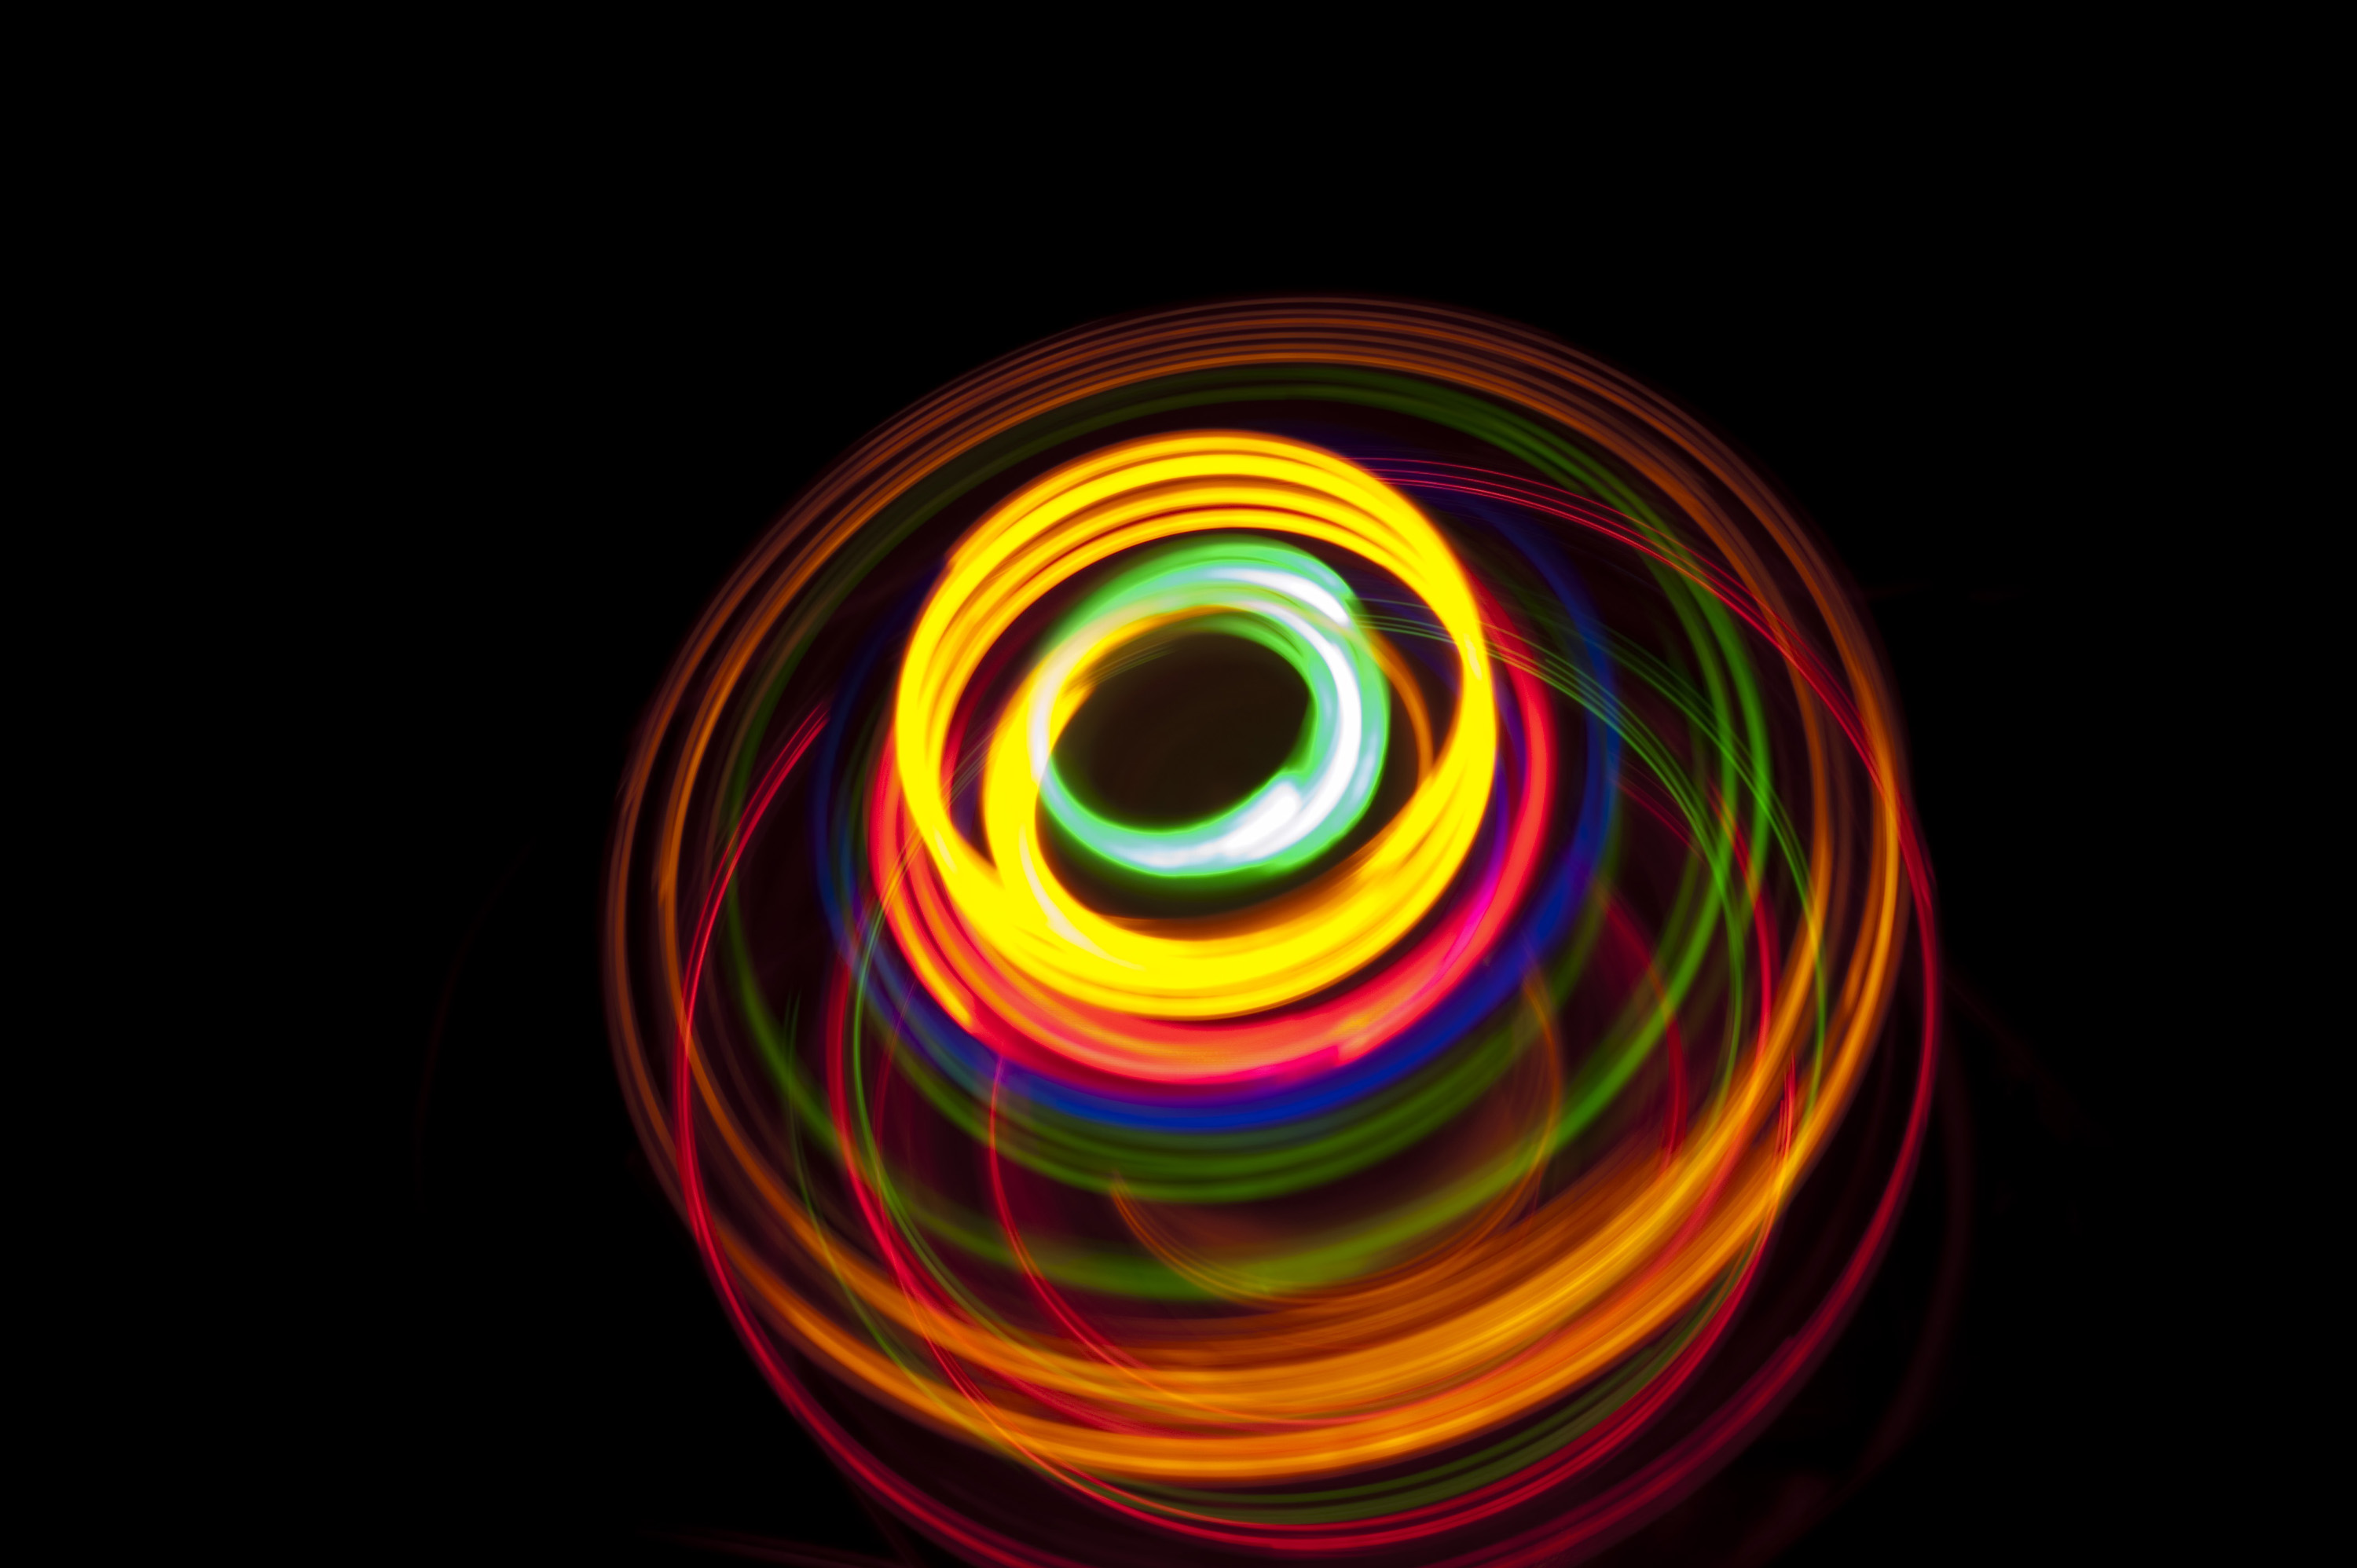 glowing overlapping circles of yellow orange red green and blue